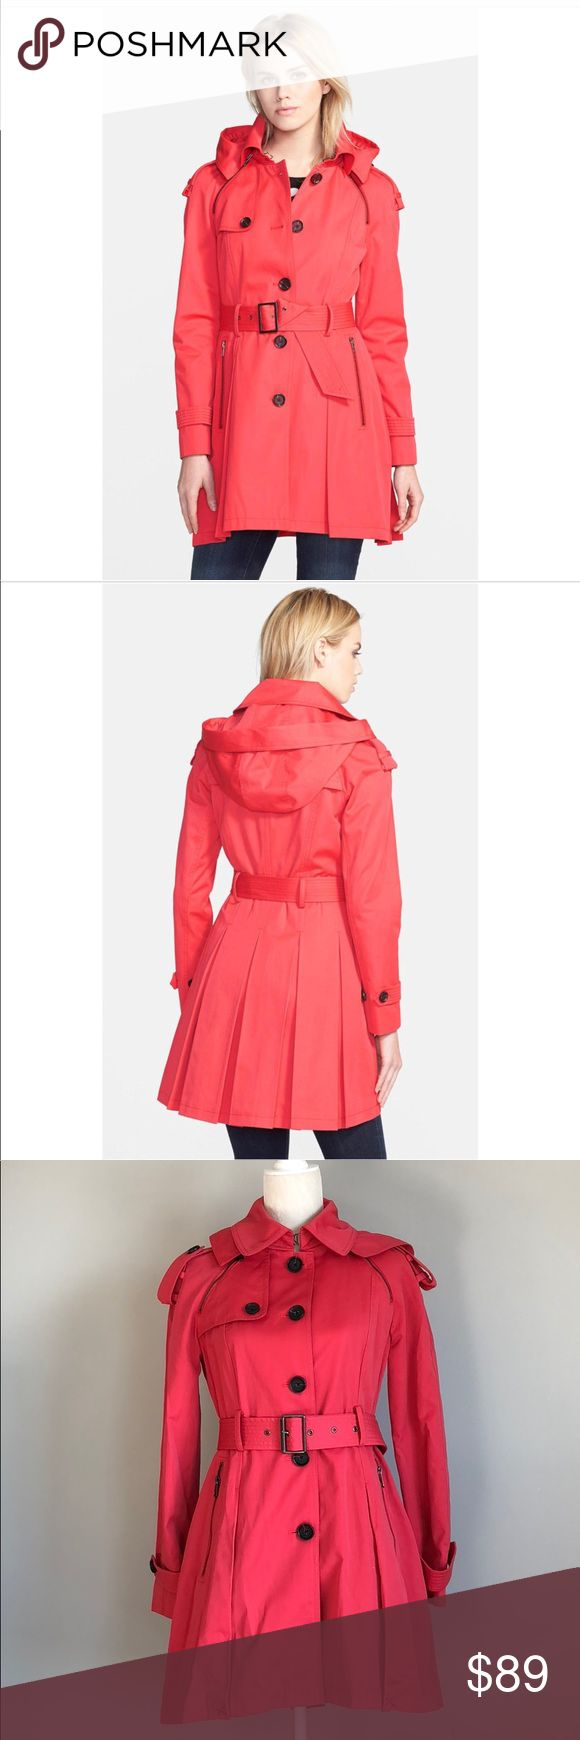 "NWT French Connection Skirted Trench with hood. S Stay dry while looking stylish! Beautiful NWT French Connection trench with a fashionable skirted silhouette flared with box pleats, belt (that can be worn tied), and a removable hood. Tag says the color is red but it is has a tad bit of coral to it. Size Small. Shoulder to front hem: 31.5"" Shoulder to back hem: 34"" Across chest while buttoned: 17"" French Connection Jackets & Coats Trench Coats"